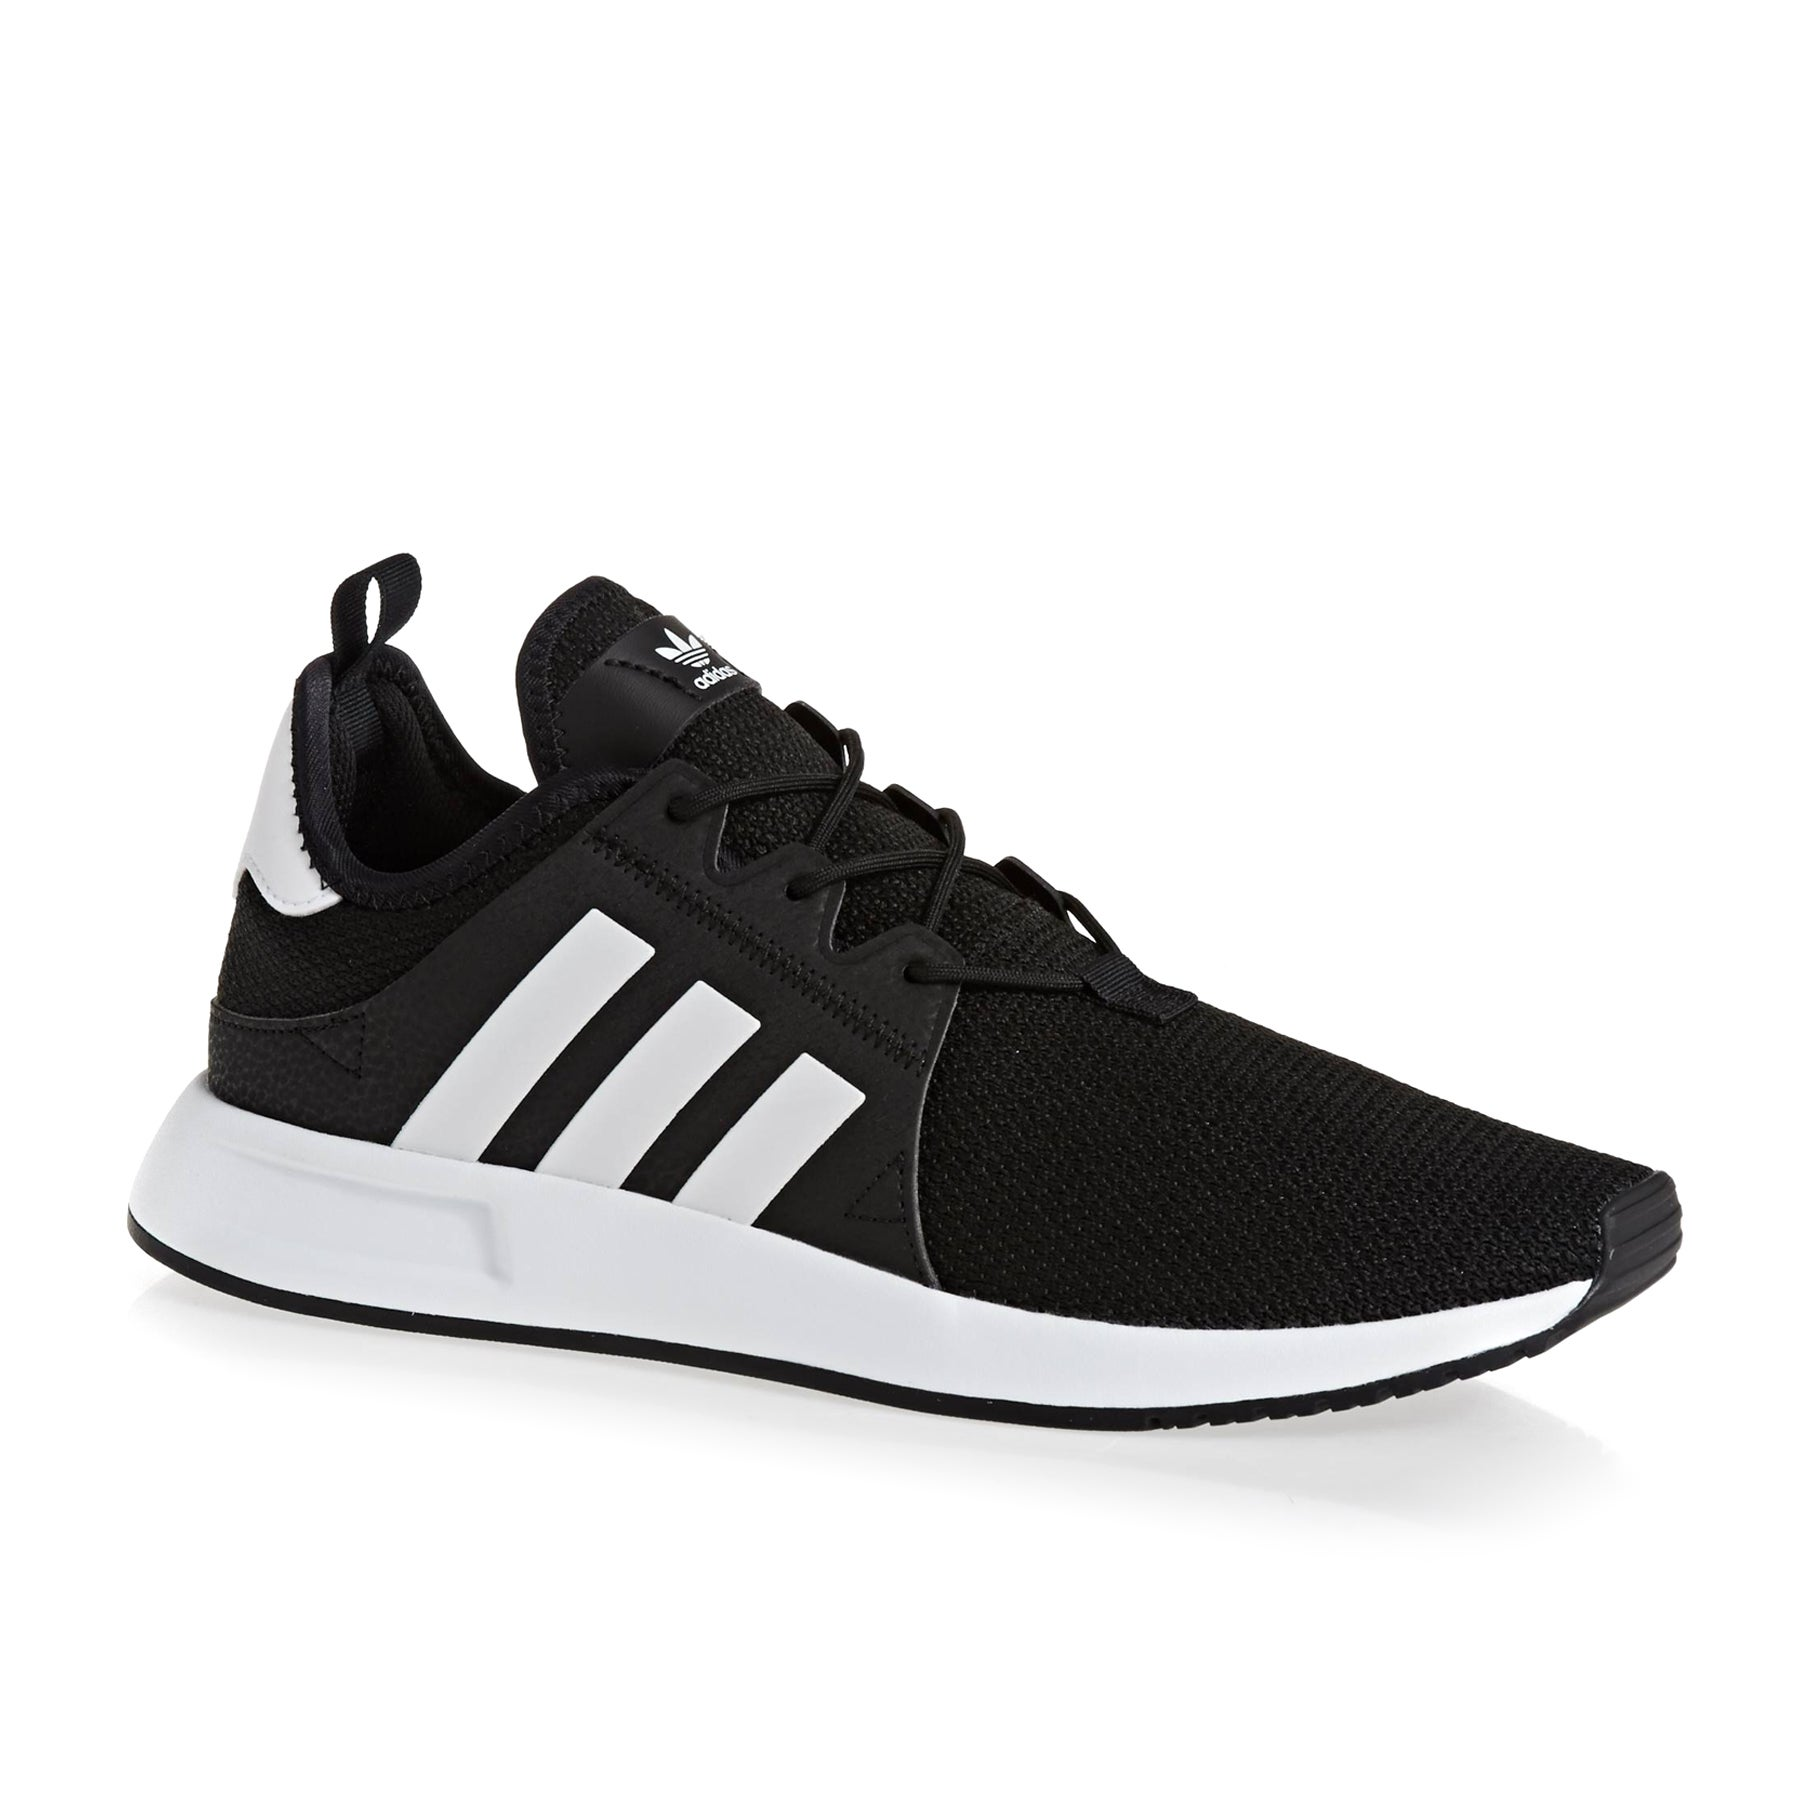 Adidas Originals X_PLR Shoes - Black White